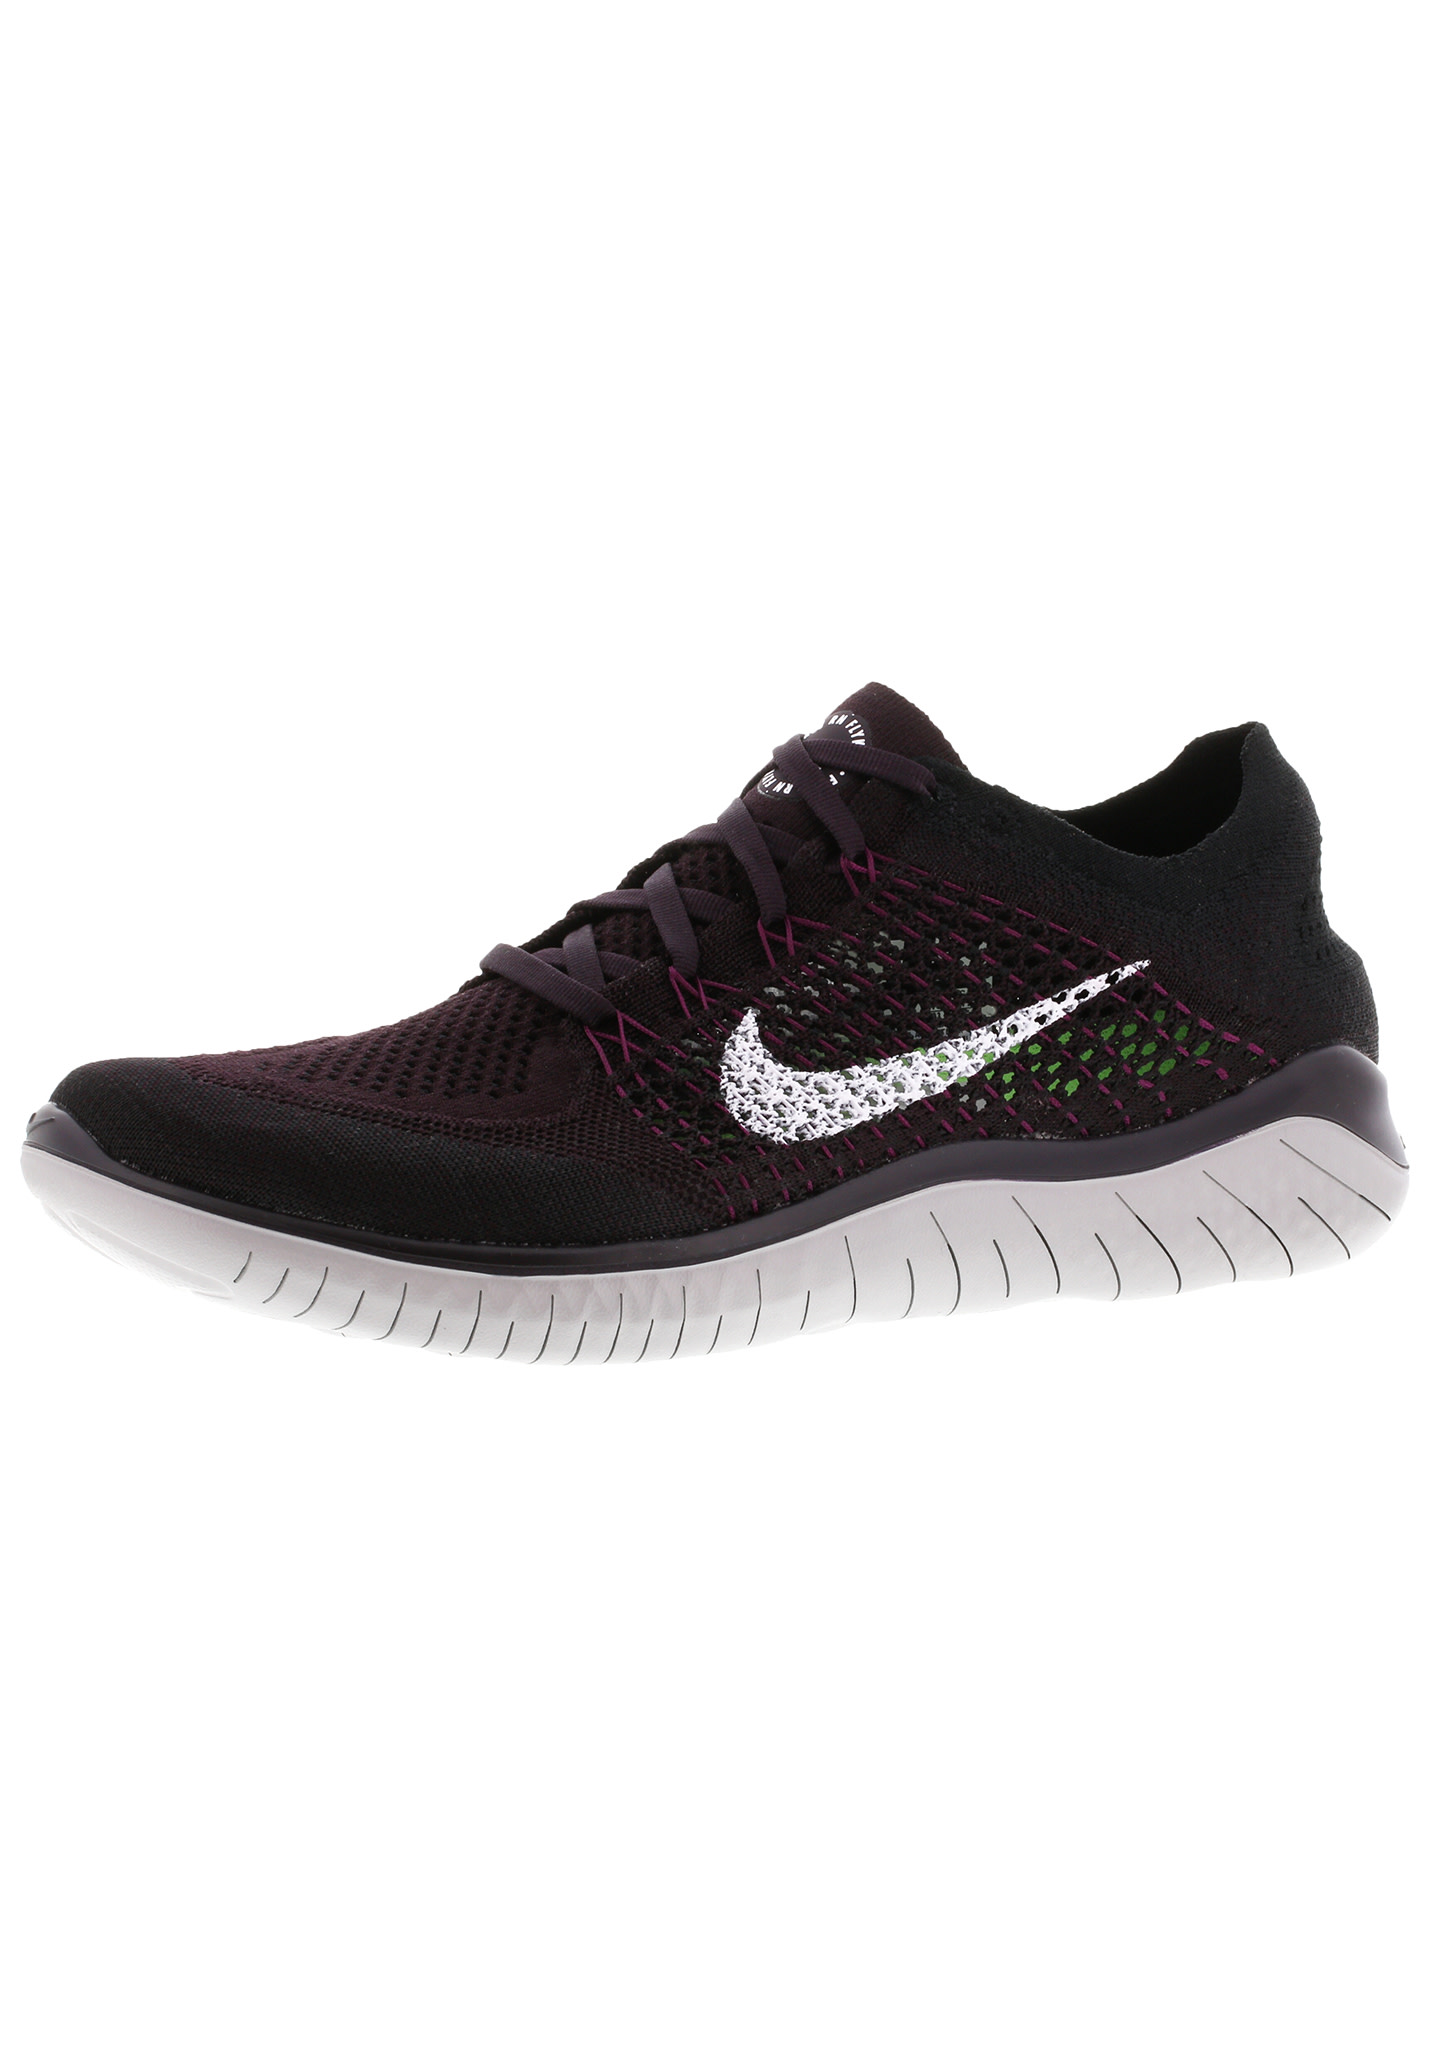 buy online 4ca3e 095f6 Nike Free RN Flyknit 2018 - Running shoes for Men - Black